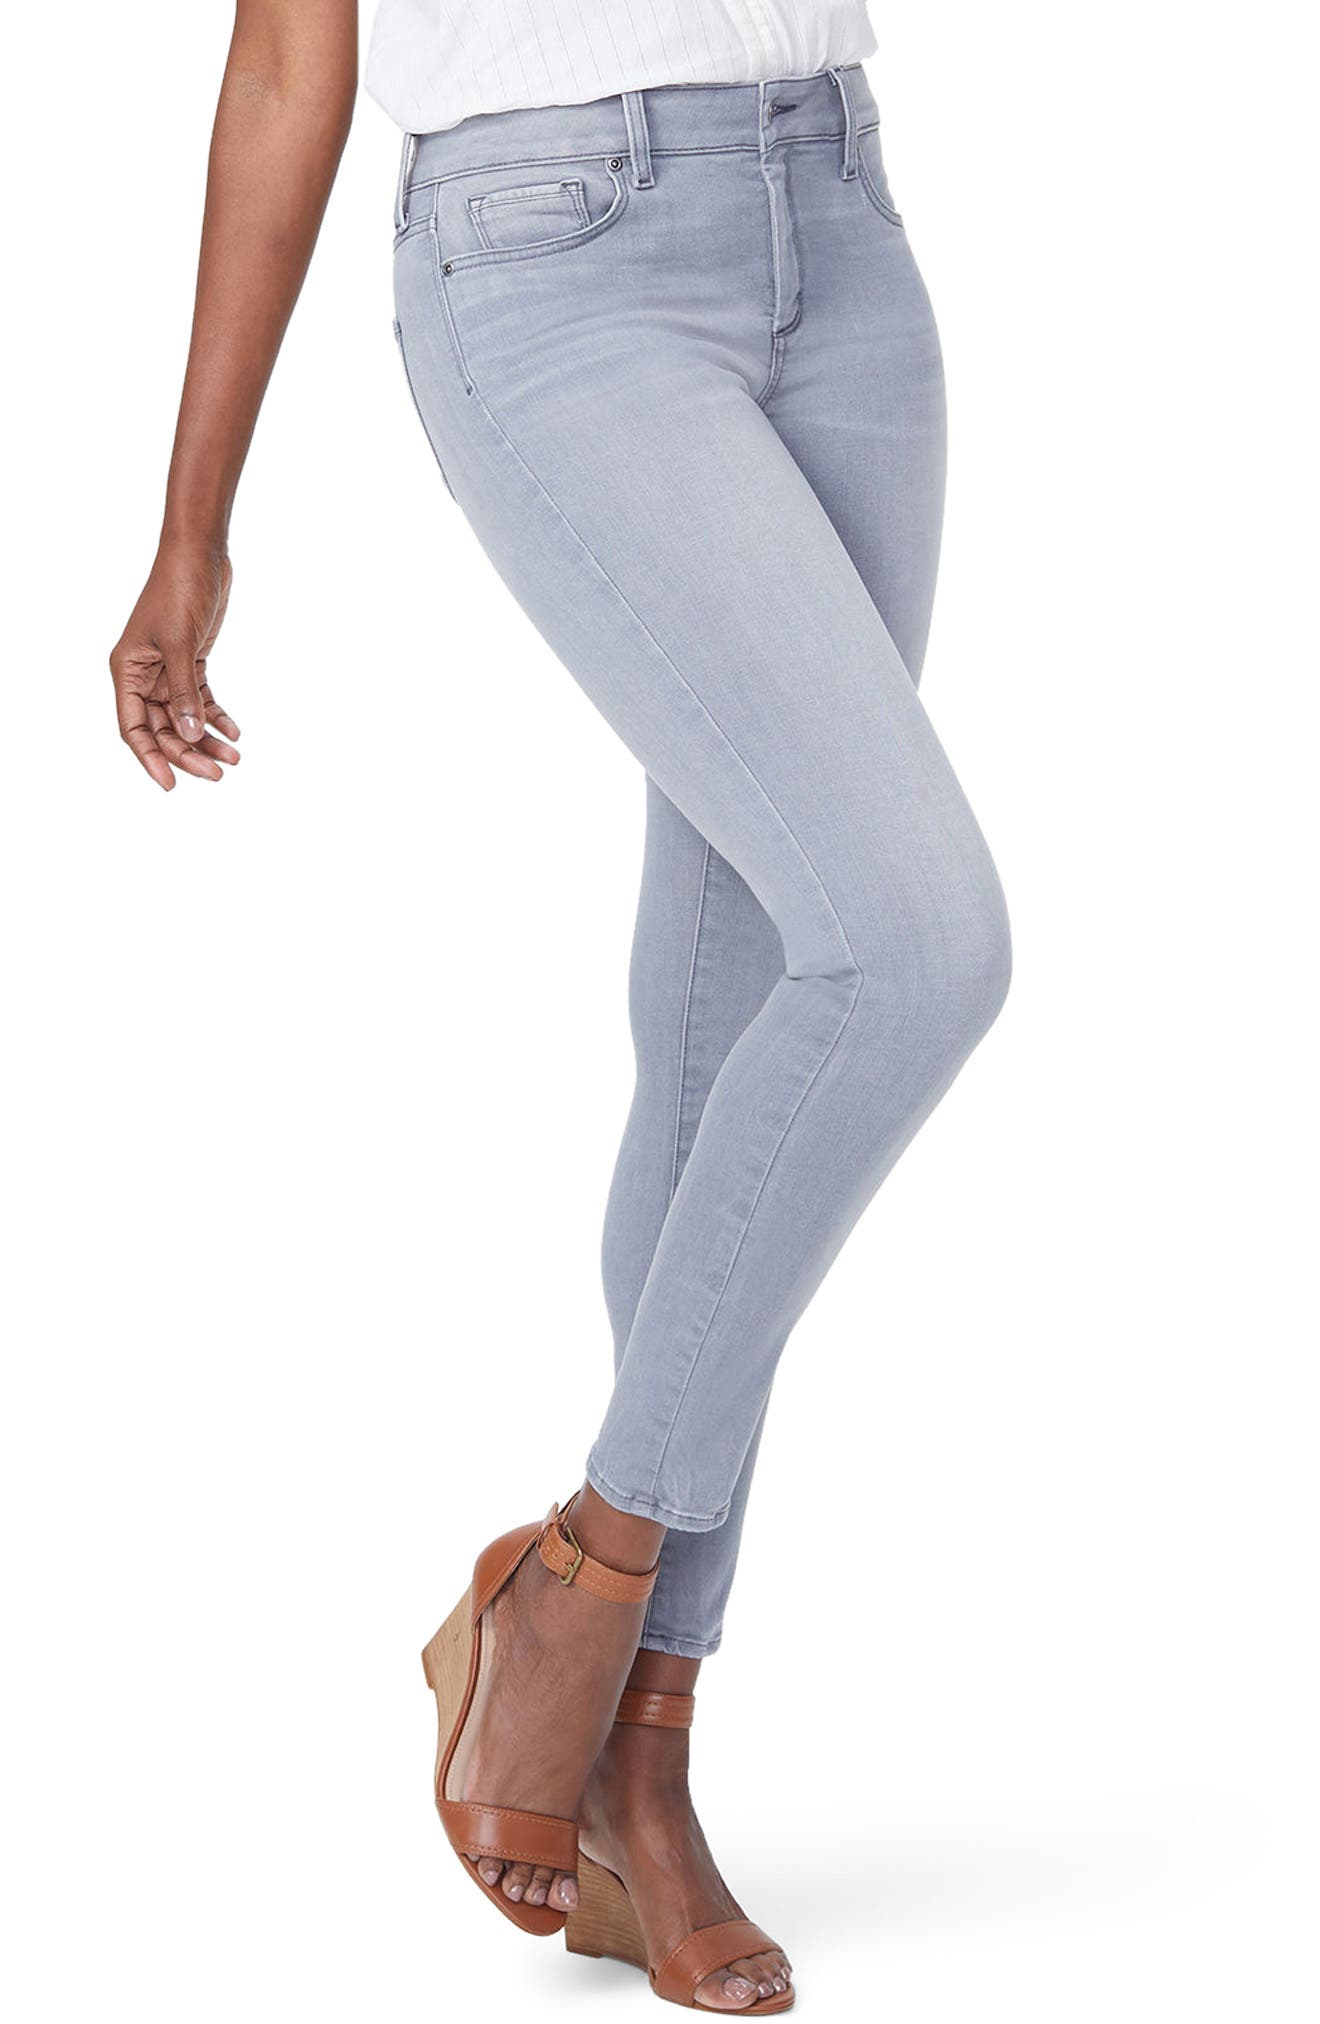 Ami Skinny Jeans,                         Main,                         color, Carbon Beach